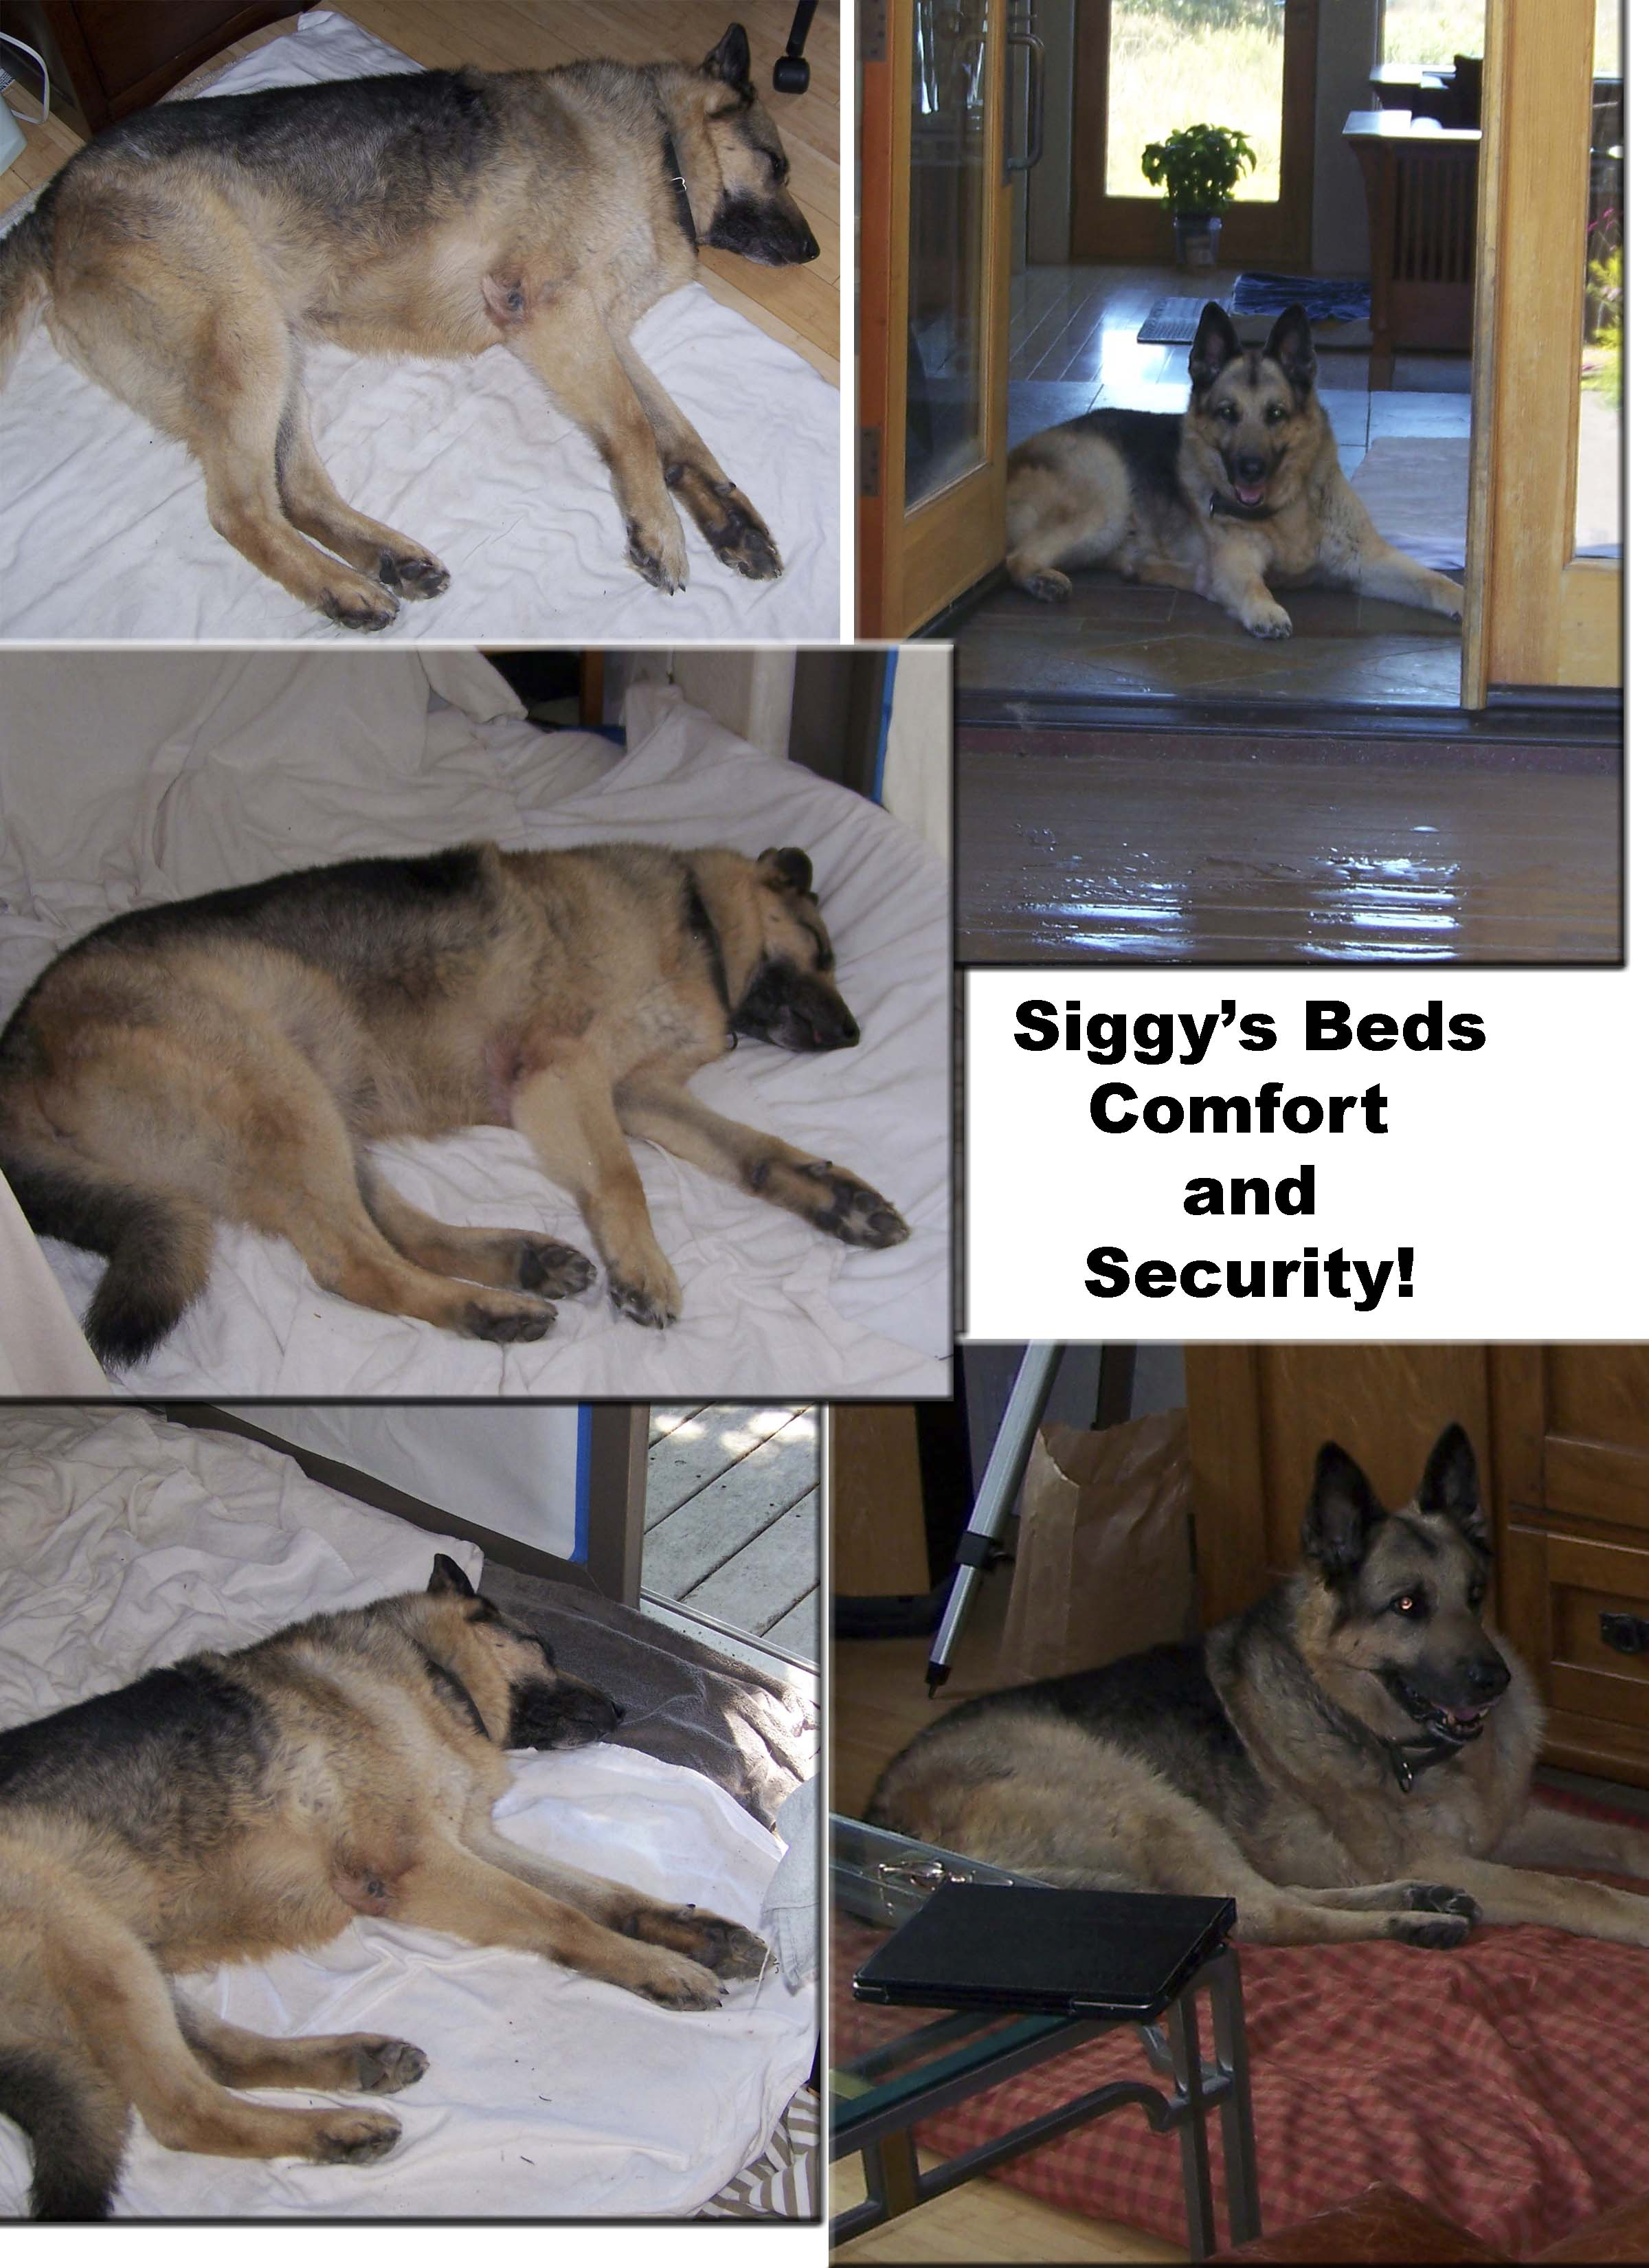 Siggy's Beds